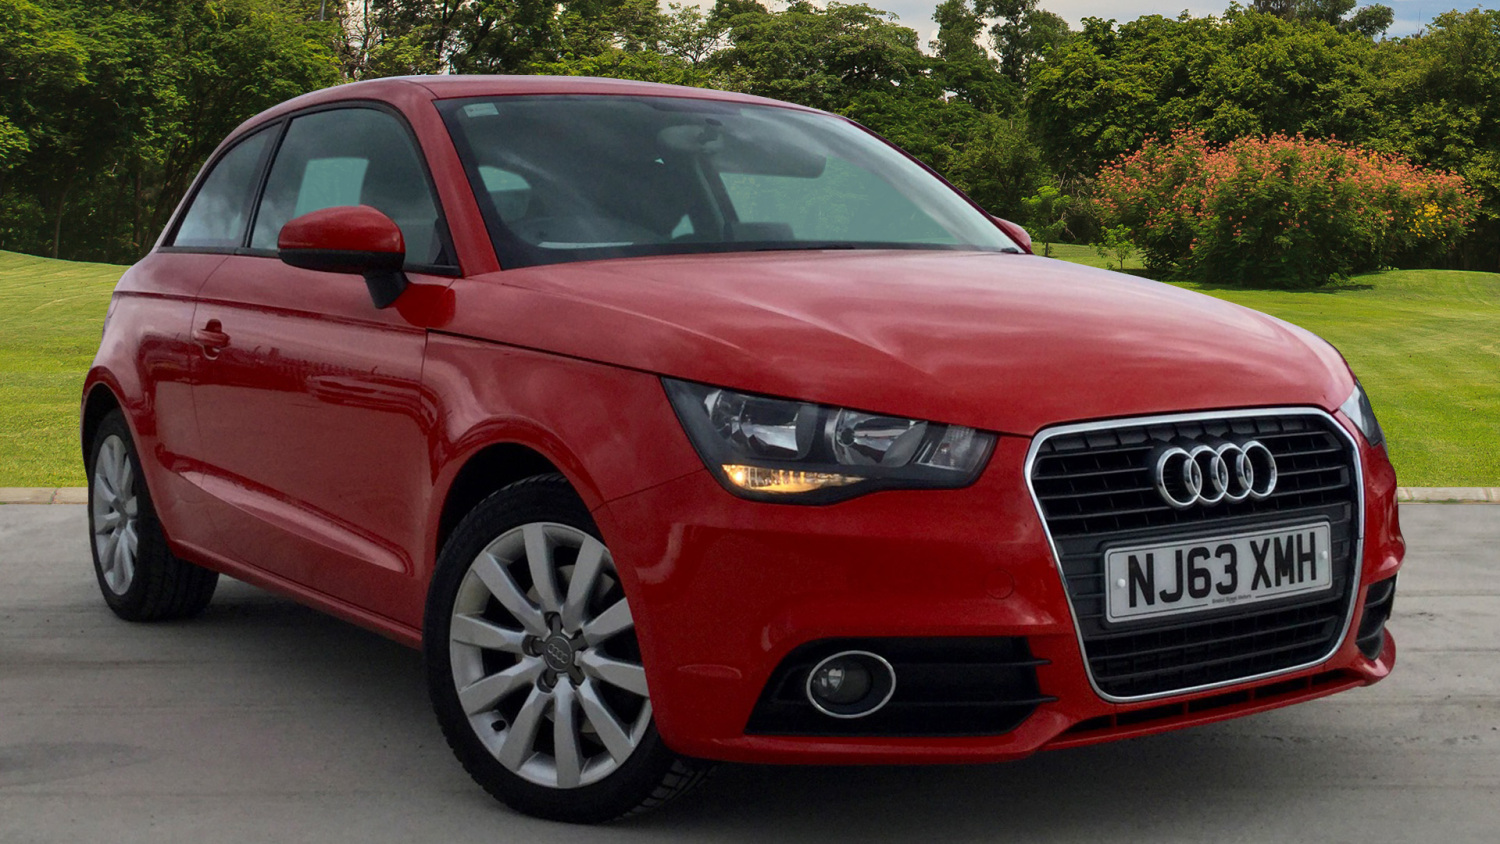 used audi a1 1 6 tdi sport 3dr diesel hatchback for sale newcastle infiniti. Black Bedroom Furniture Sets. Home Design Ideas